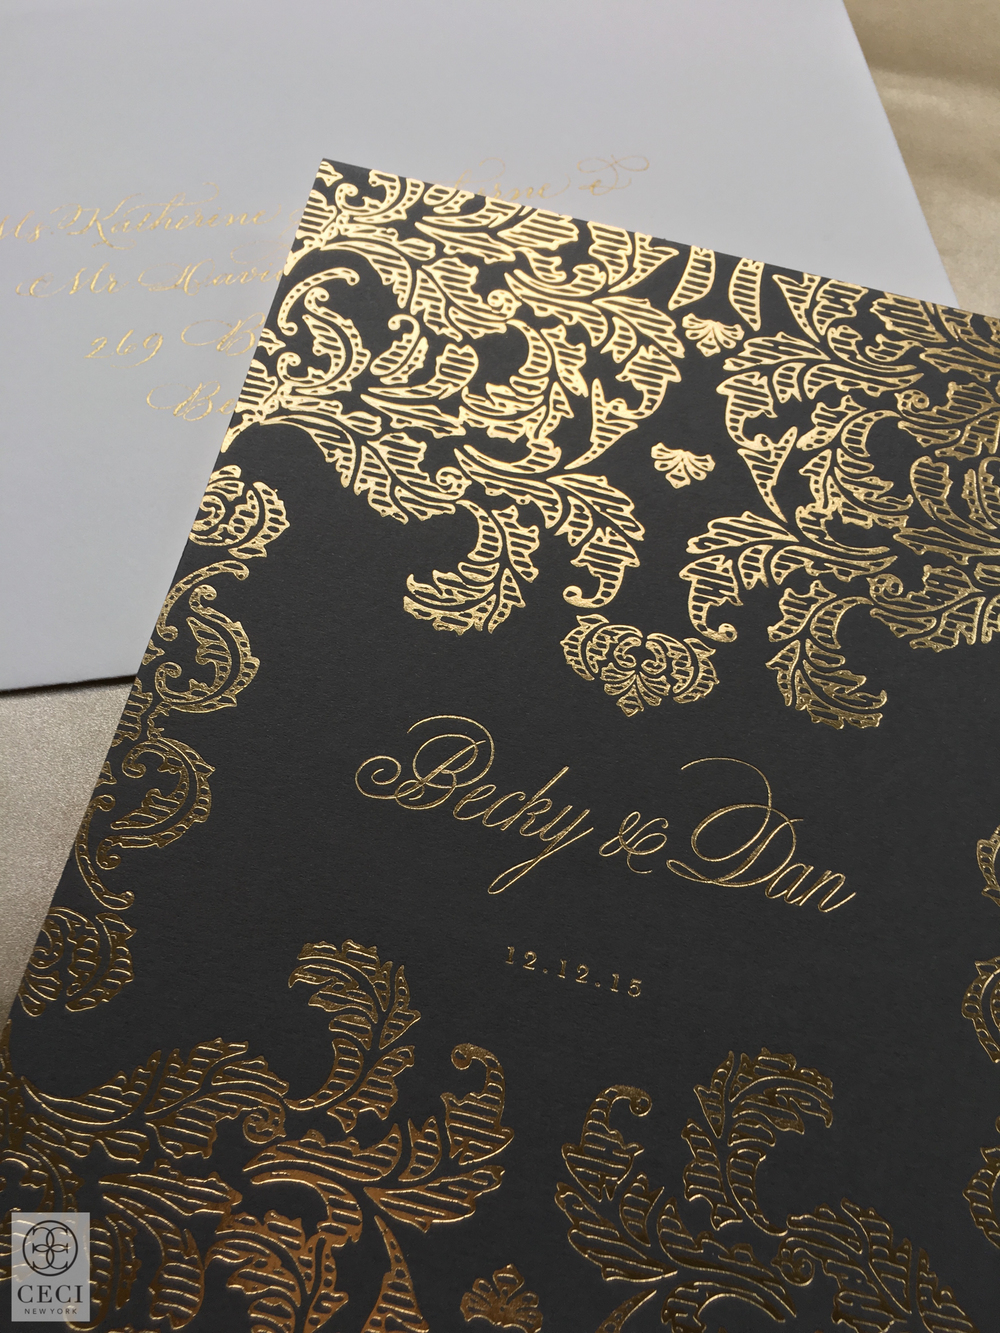 Ceci_New_York_New_Jersey_Invitations_Wedding_New_York_Elegance_Silver_Blue_Letterpress_Deco_Classic_Foil_Stamping_Custom_Couture_Personalized-93.jpg